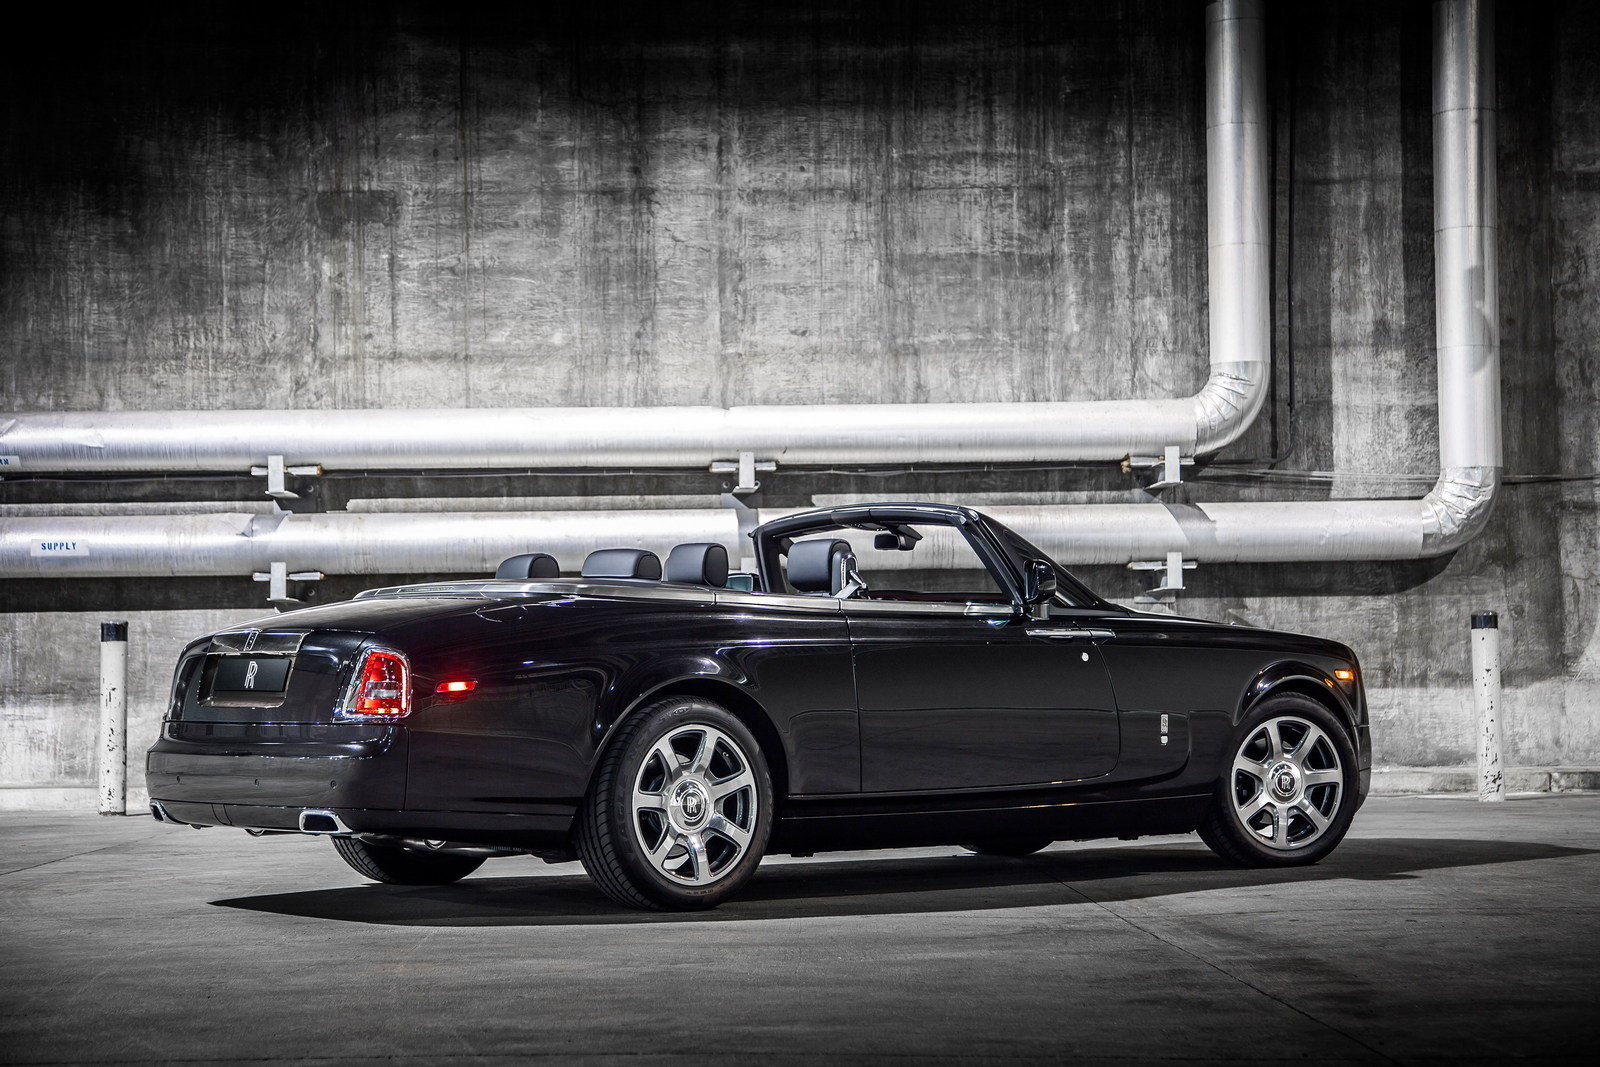 2015 rolls royce phantom drophead coupe nighthawk picture 615527 car review top speed. Black Bedroom Furniture Sets. Home Design Ideas